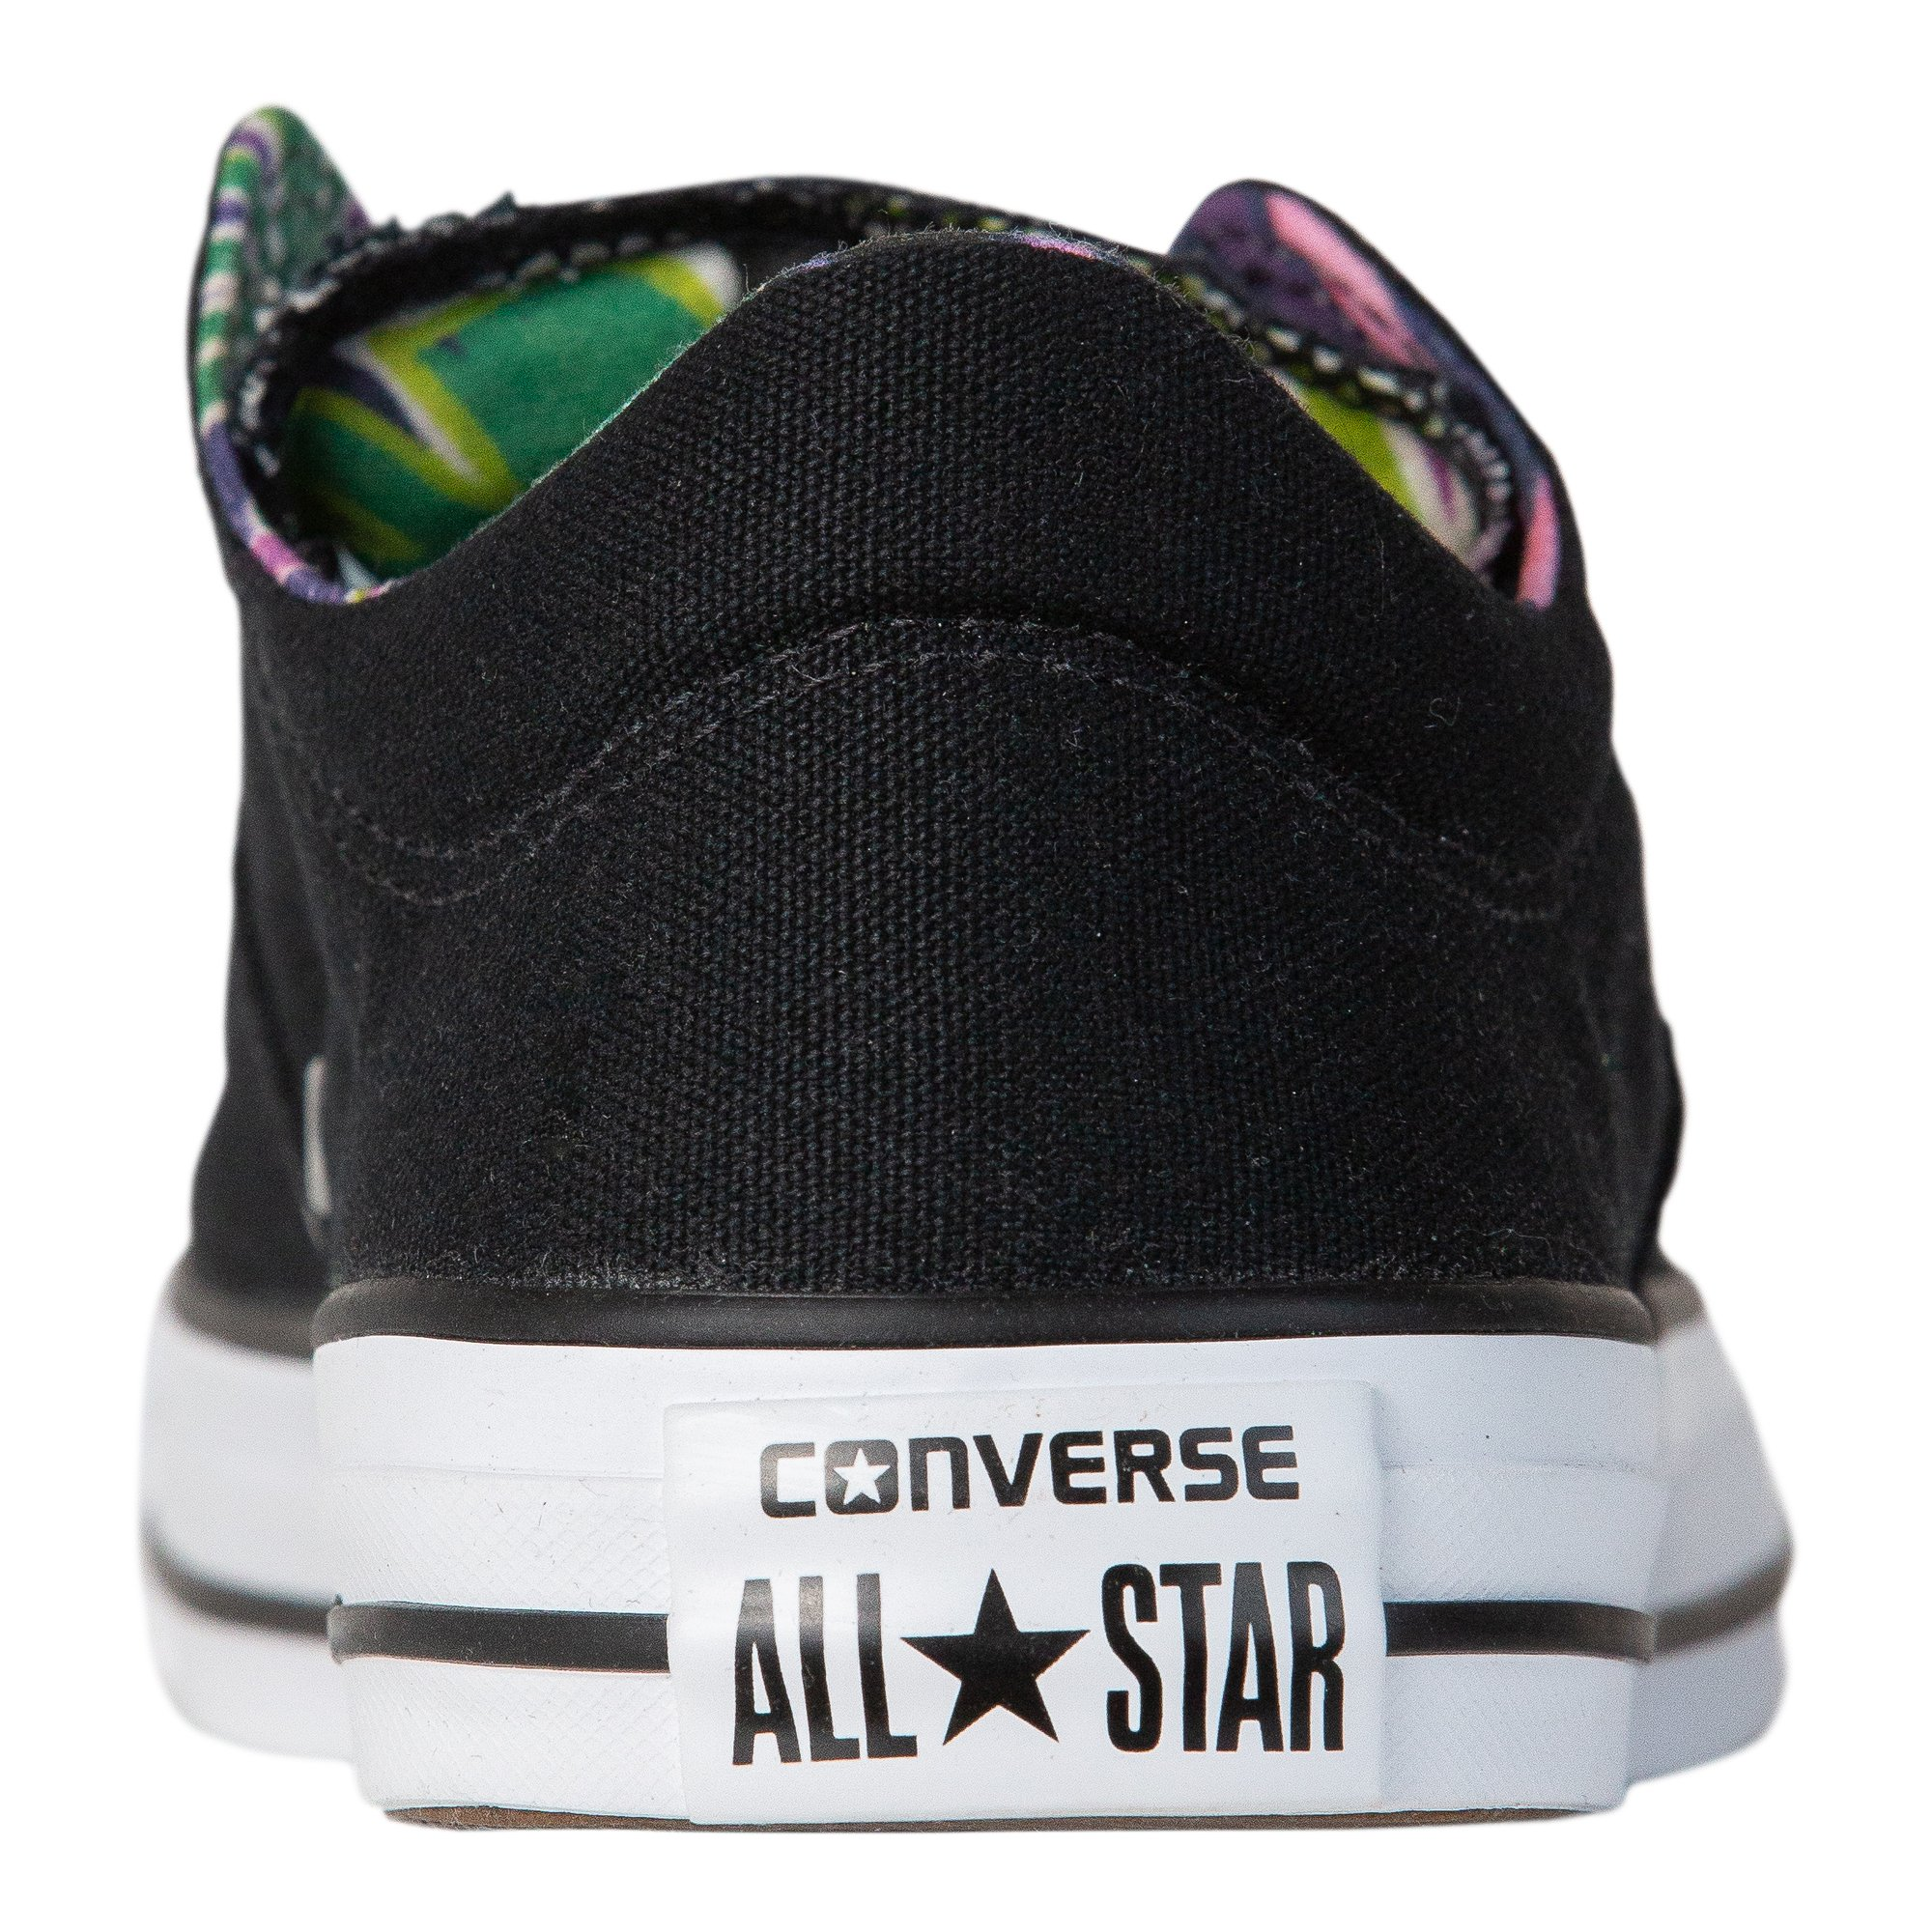 Converse Women's Chuck Taylor All Star Madison Sneakers, Black/White/White, 8 B(M) US by Converse (Image #3)